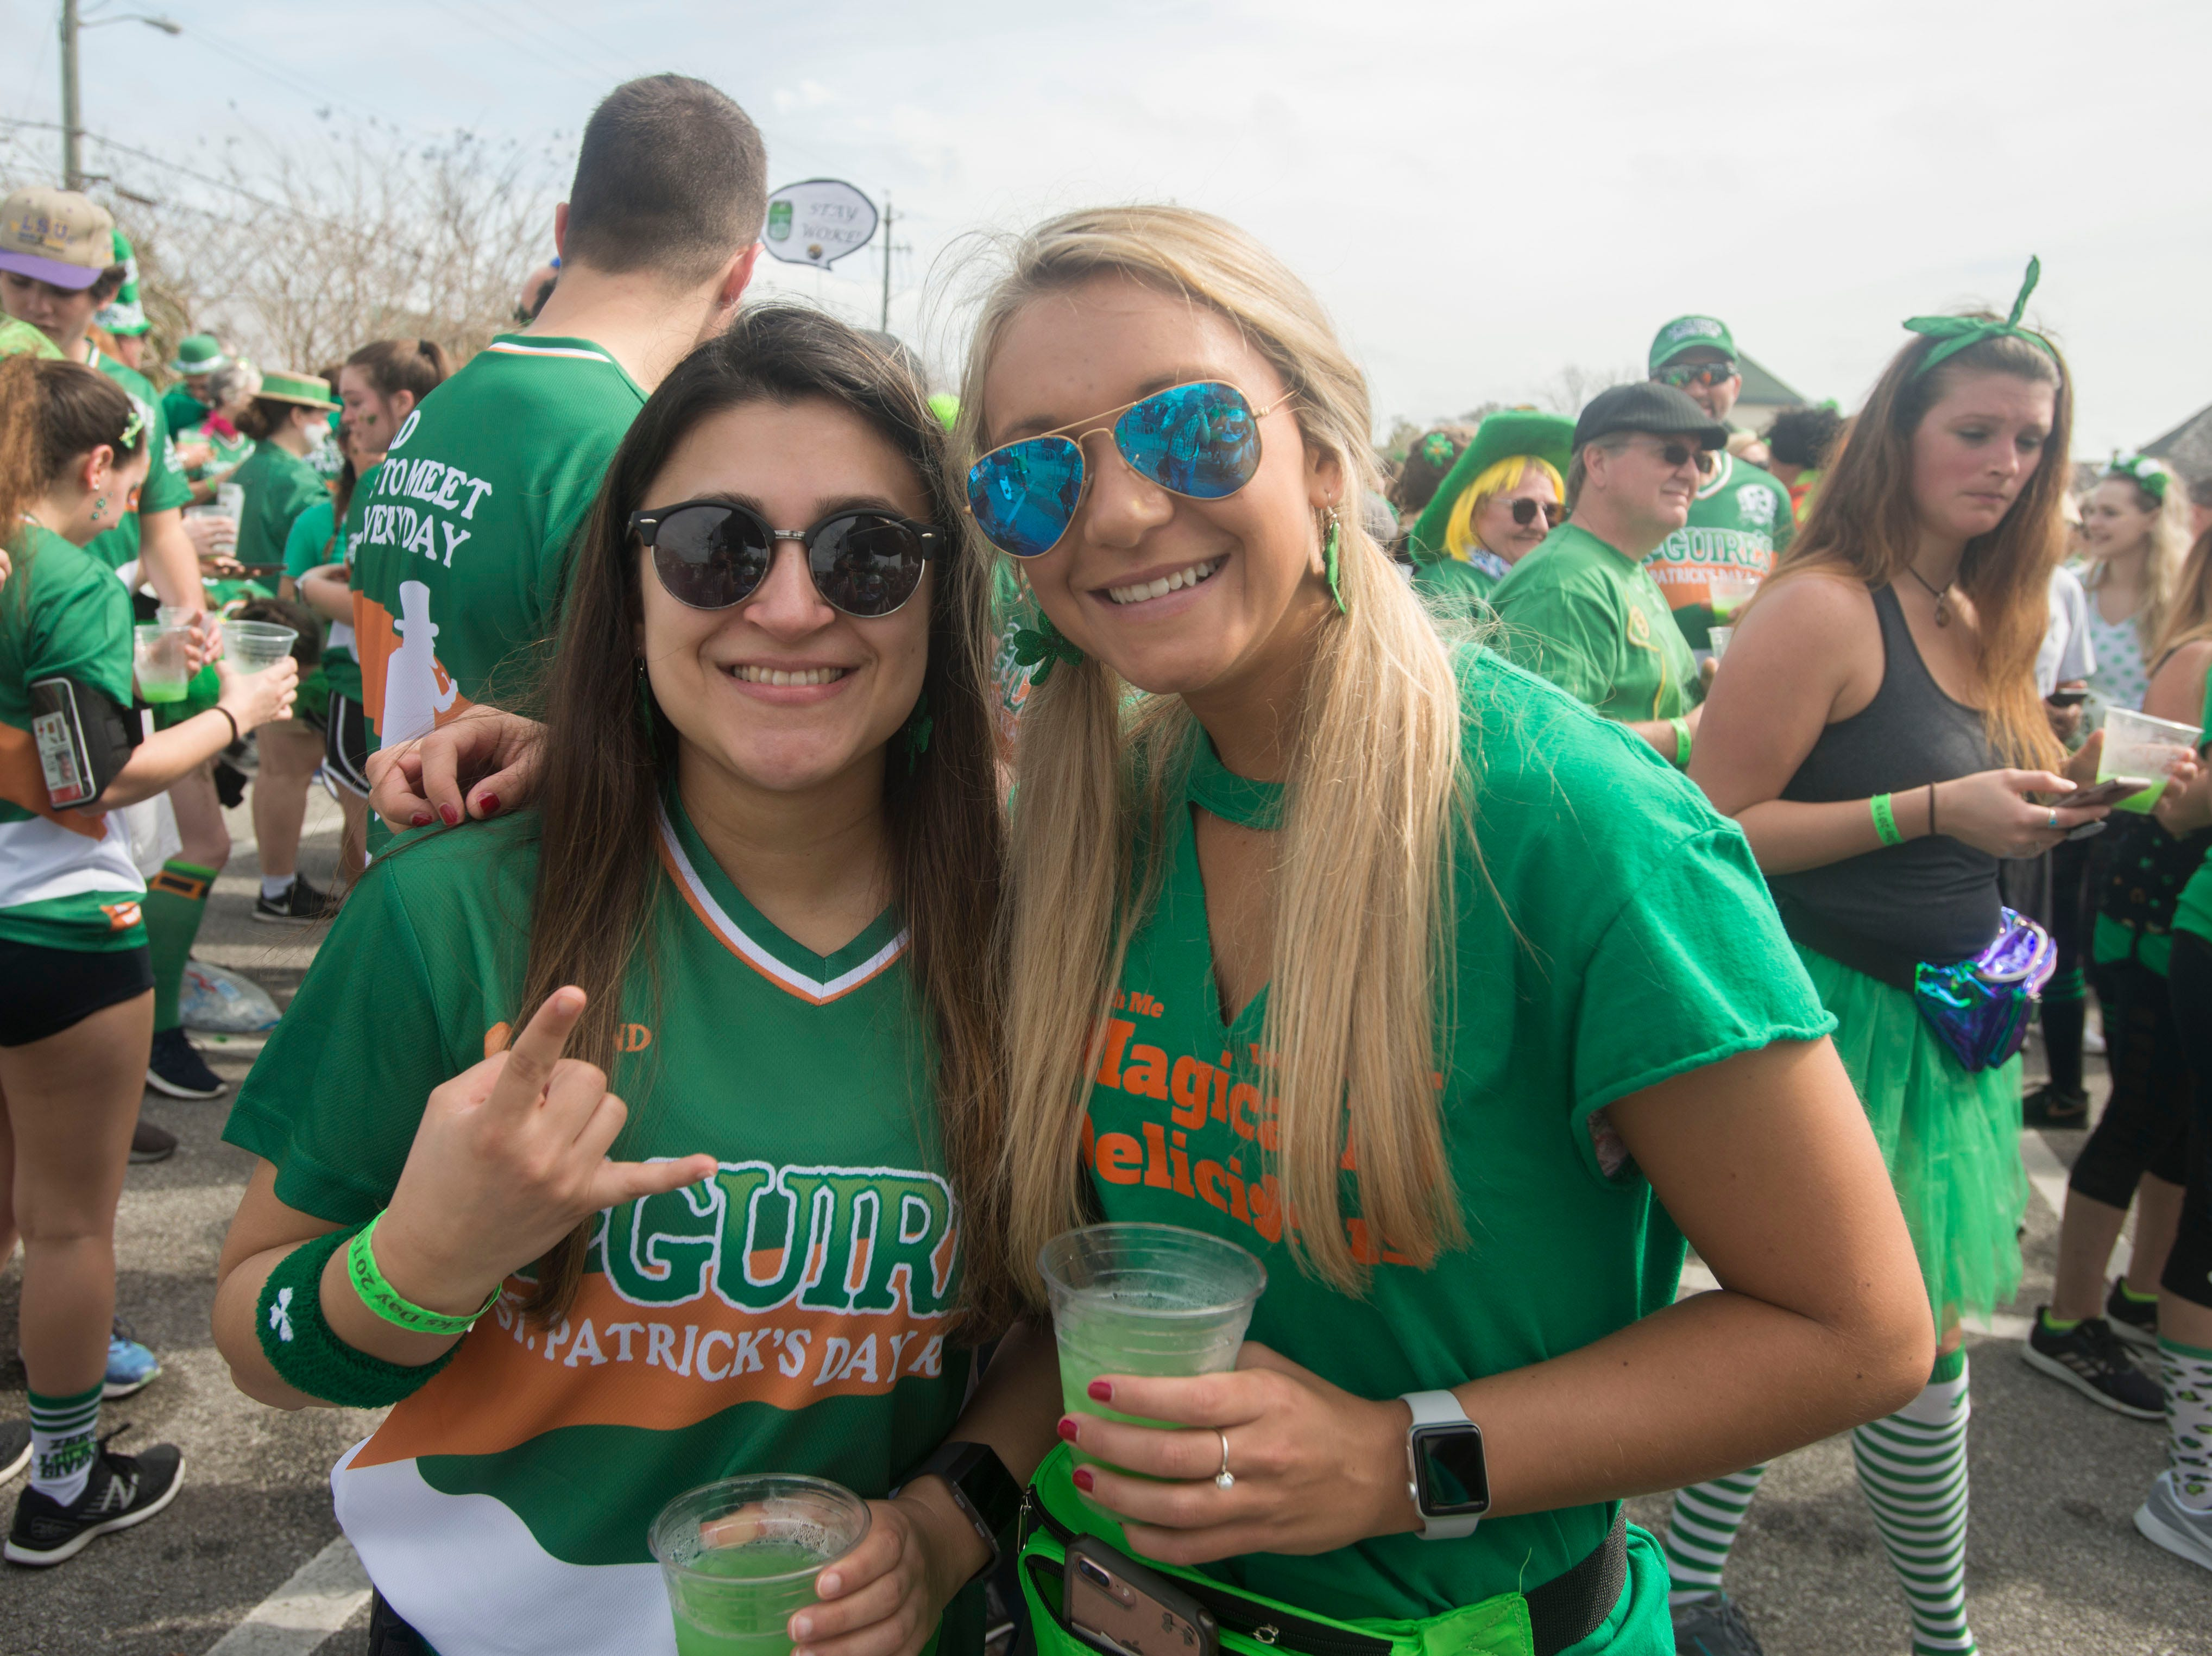 Runners party Ssaturday, March 9, 2019 during the 42nd annual McGuire's St. Patrick's Day Run after party.